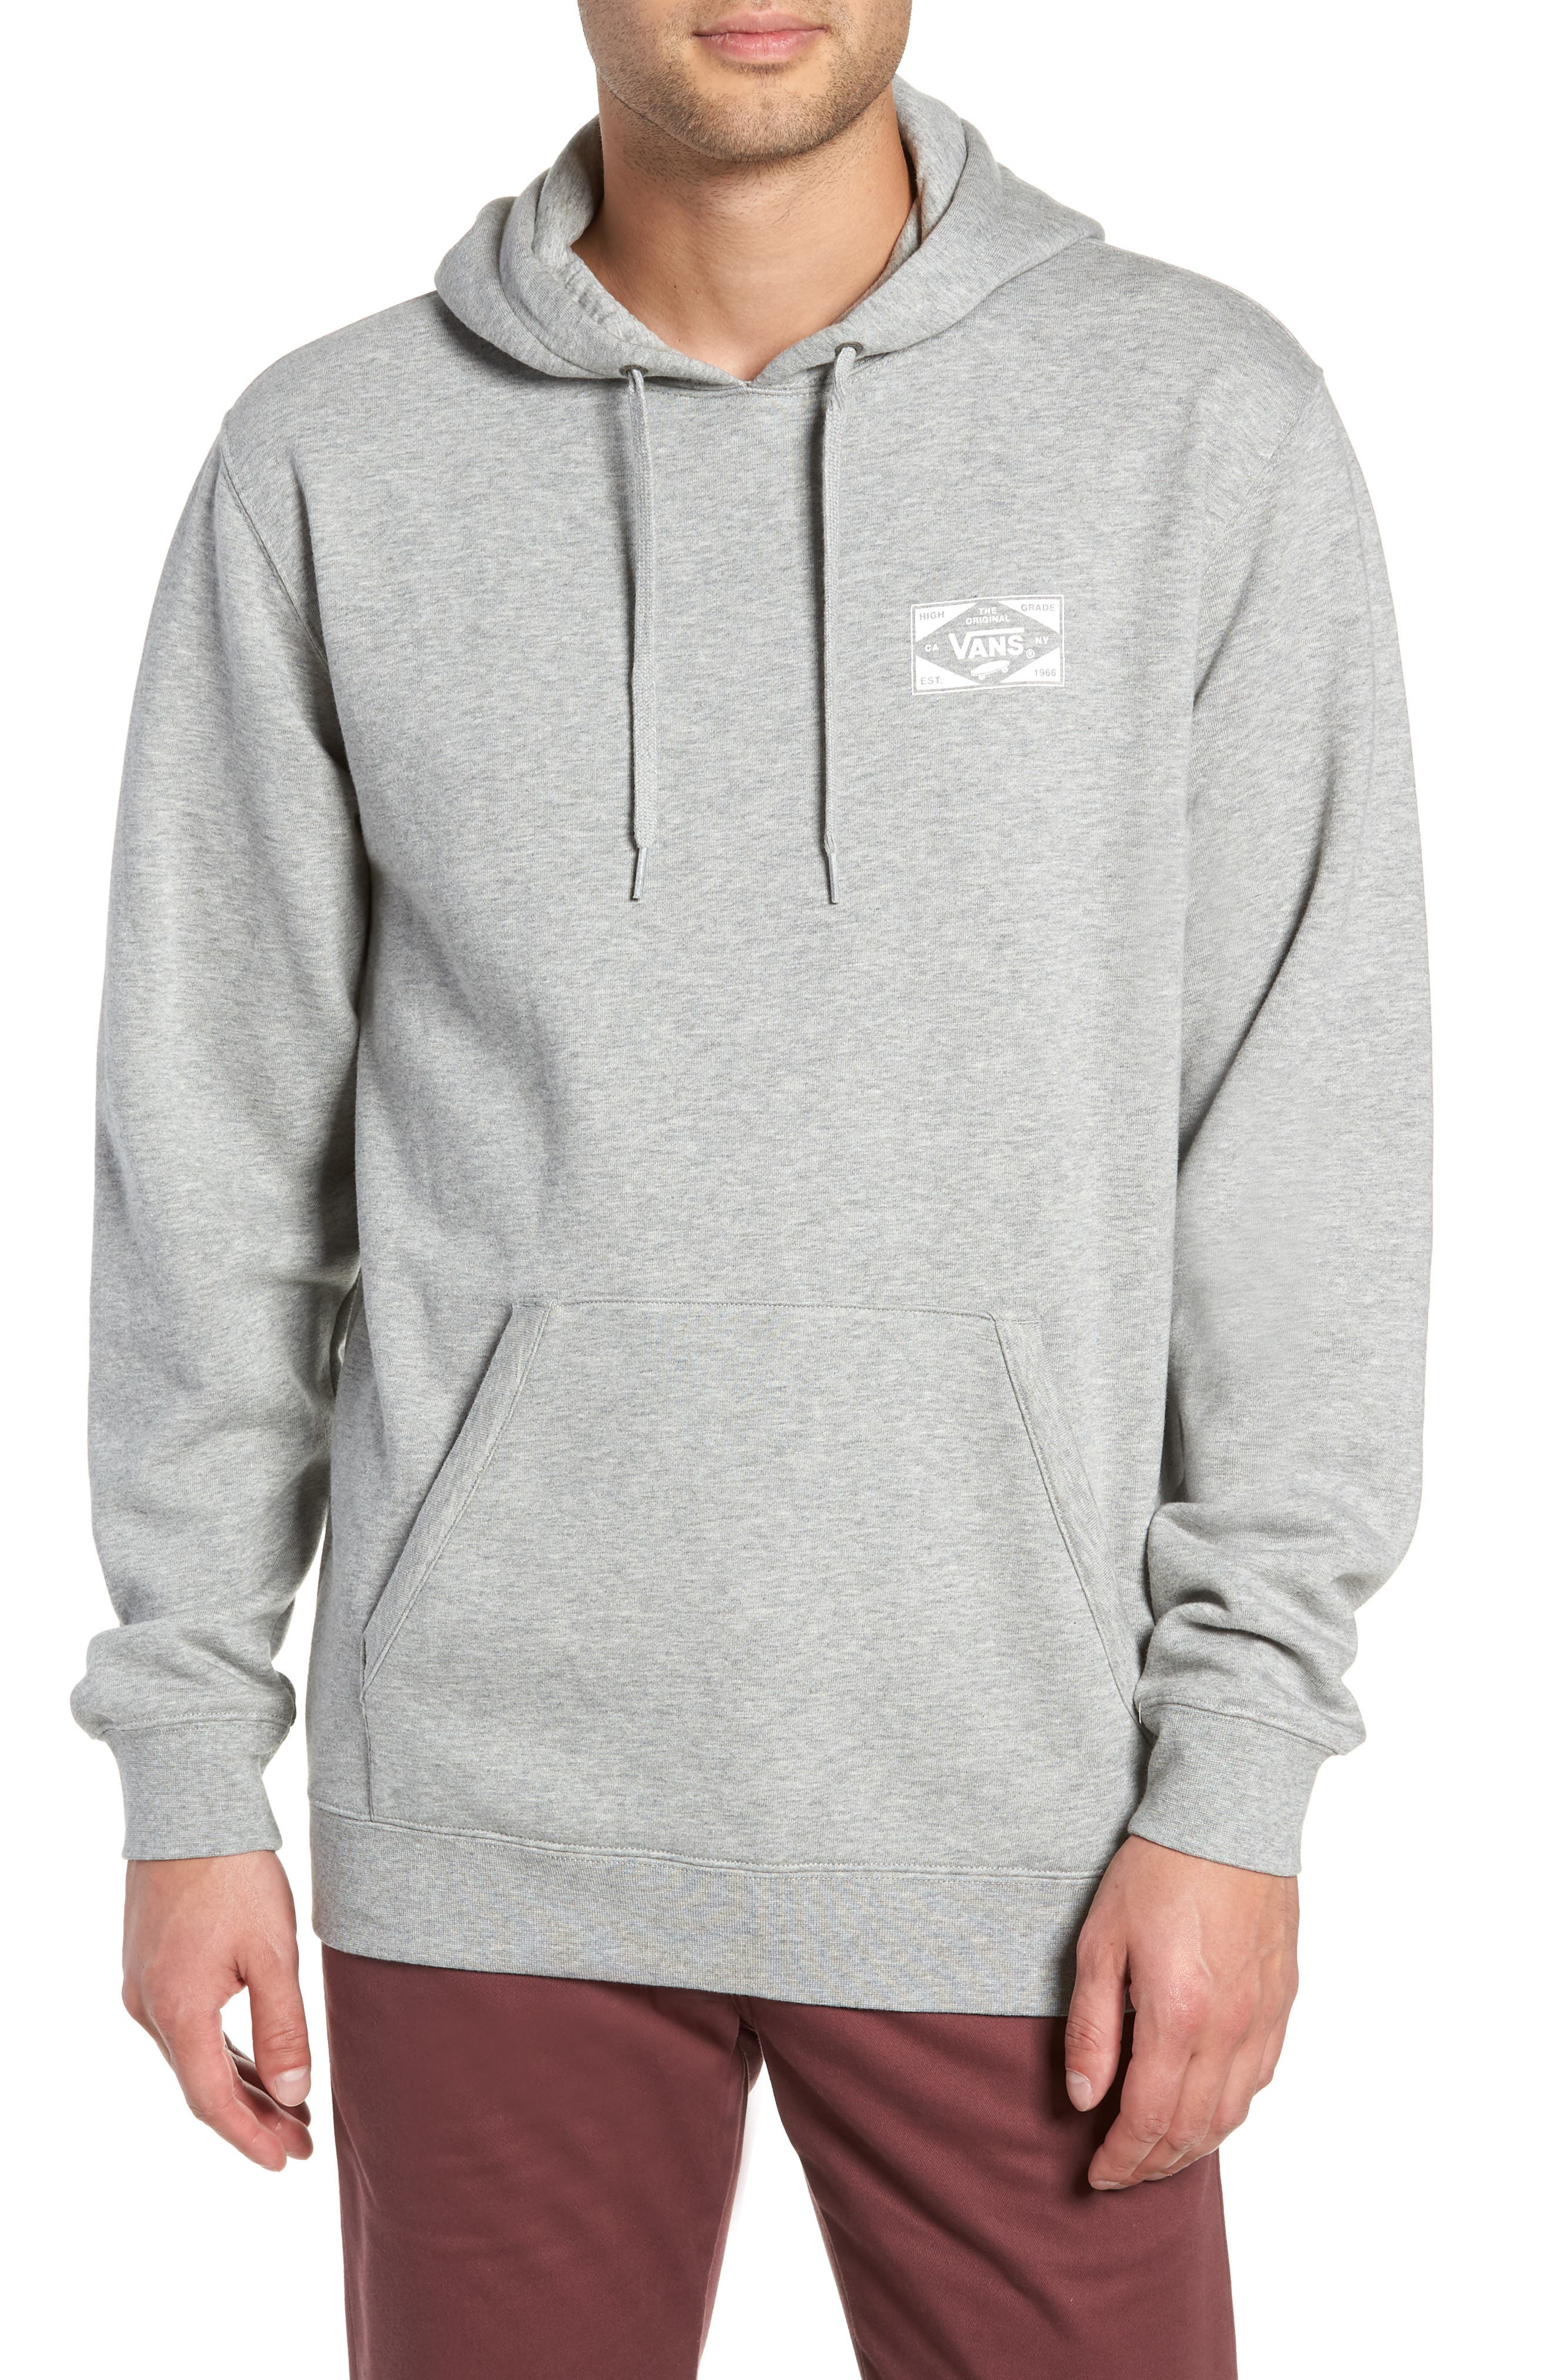 Best in Class Hooded Sweatshirt,                             Main thumbnail 1, color,                             CEMENT HEATHER